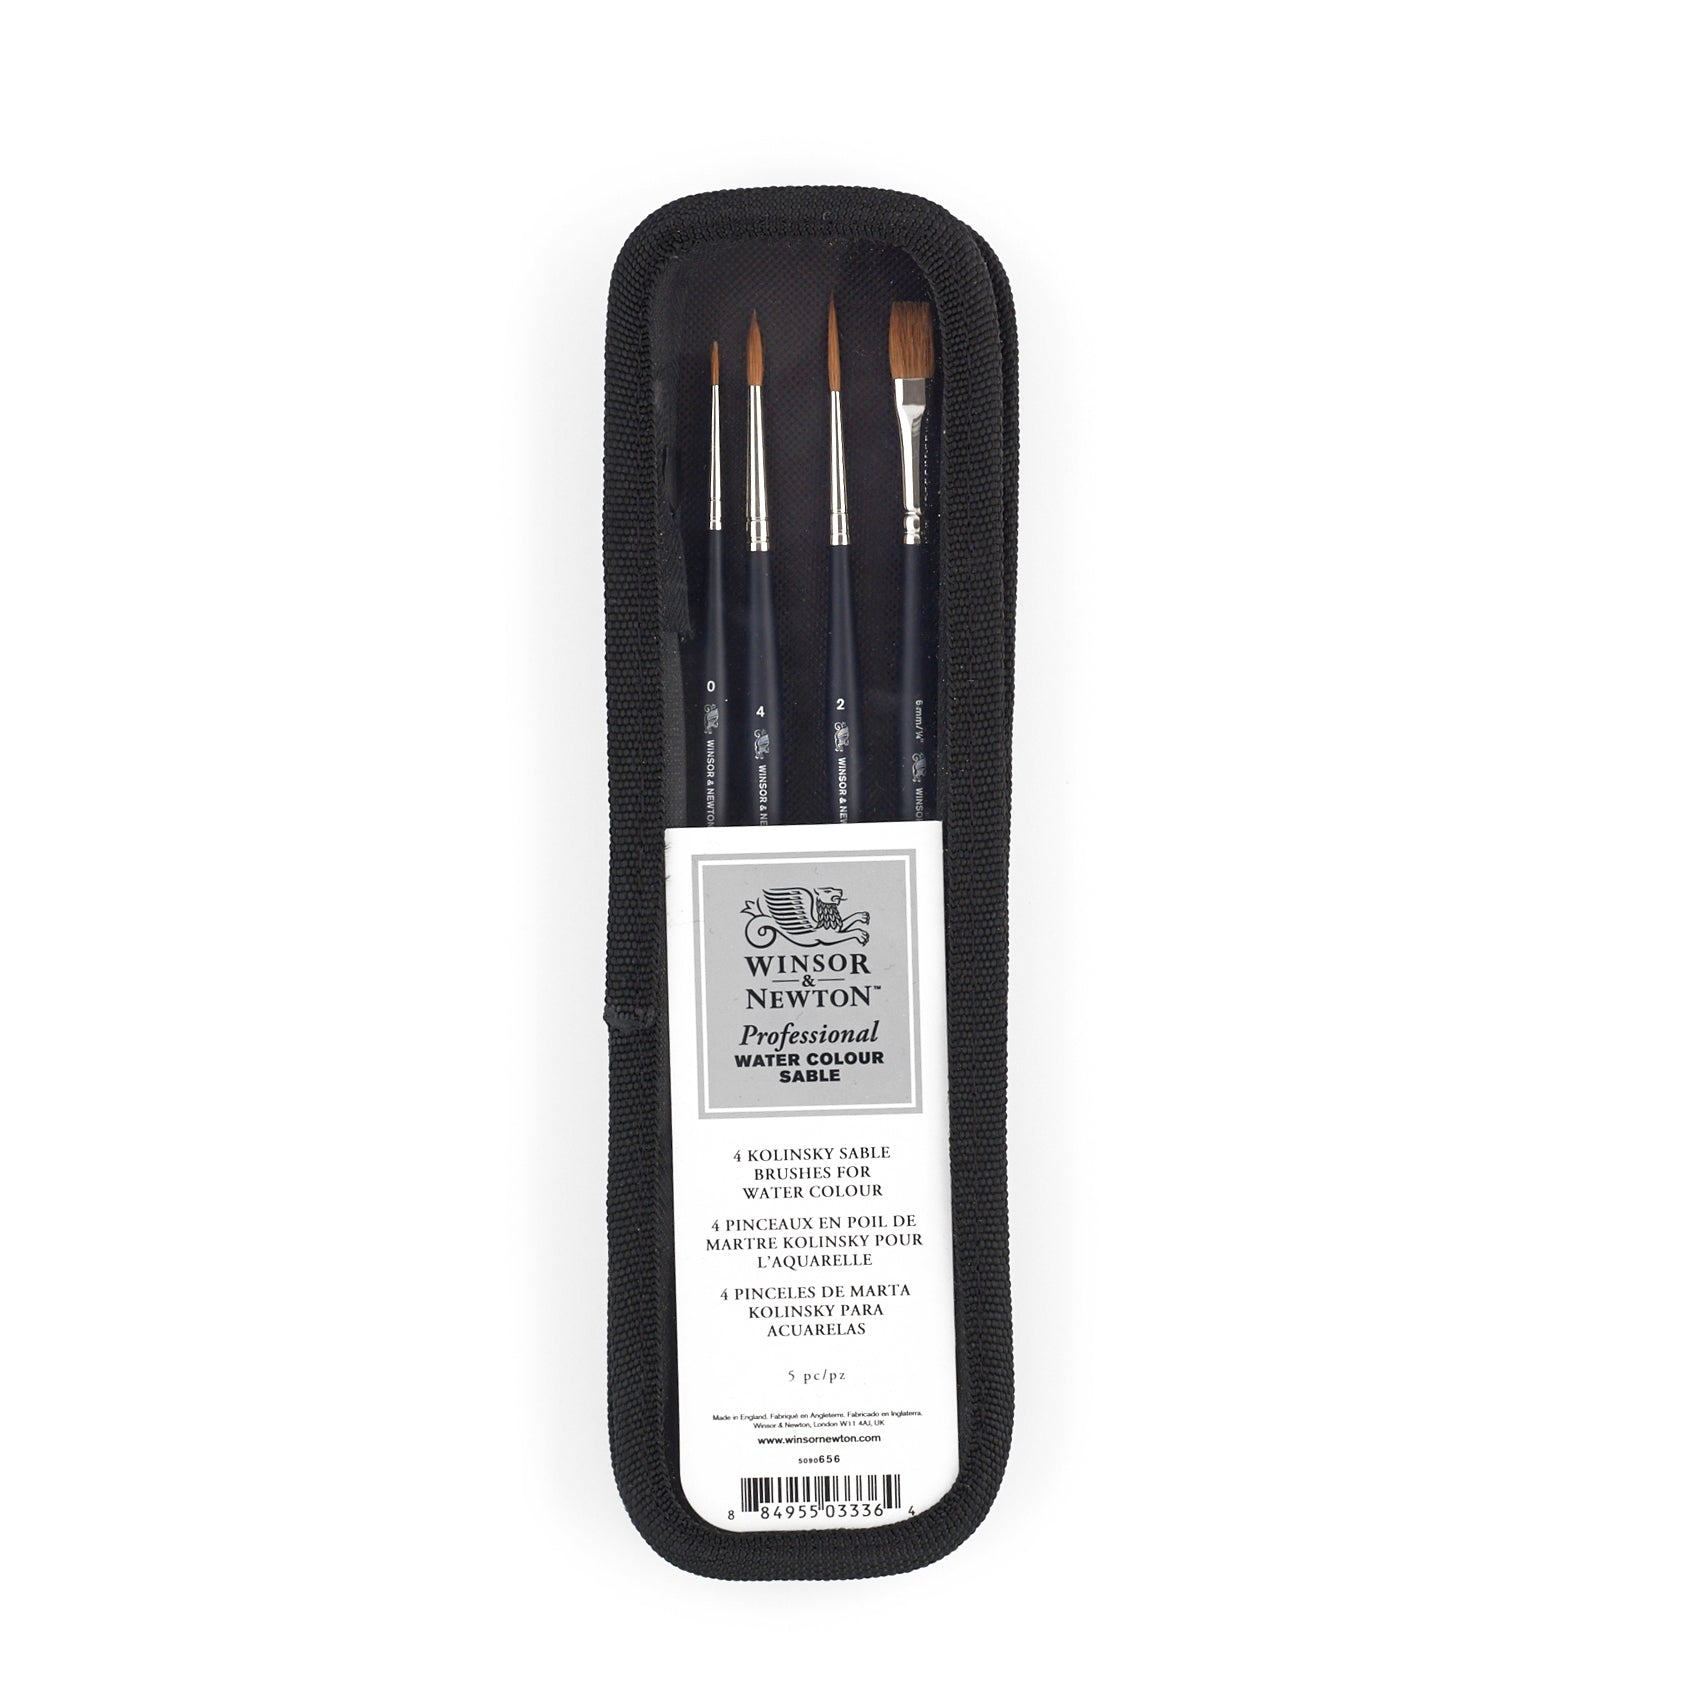 Winsor & Newtons Artists' Professional Watercolour Sable brush range is hand-made with high-quality Kolinsky sable hair. The brushes have been designed with a sculpted ergonomic handle and a matt finish for added comfort.